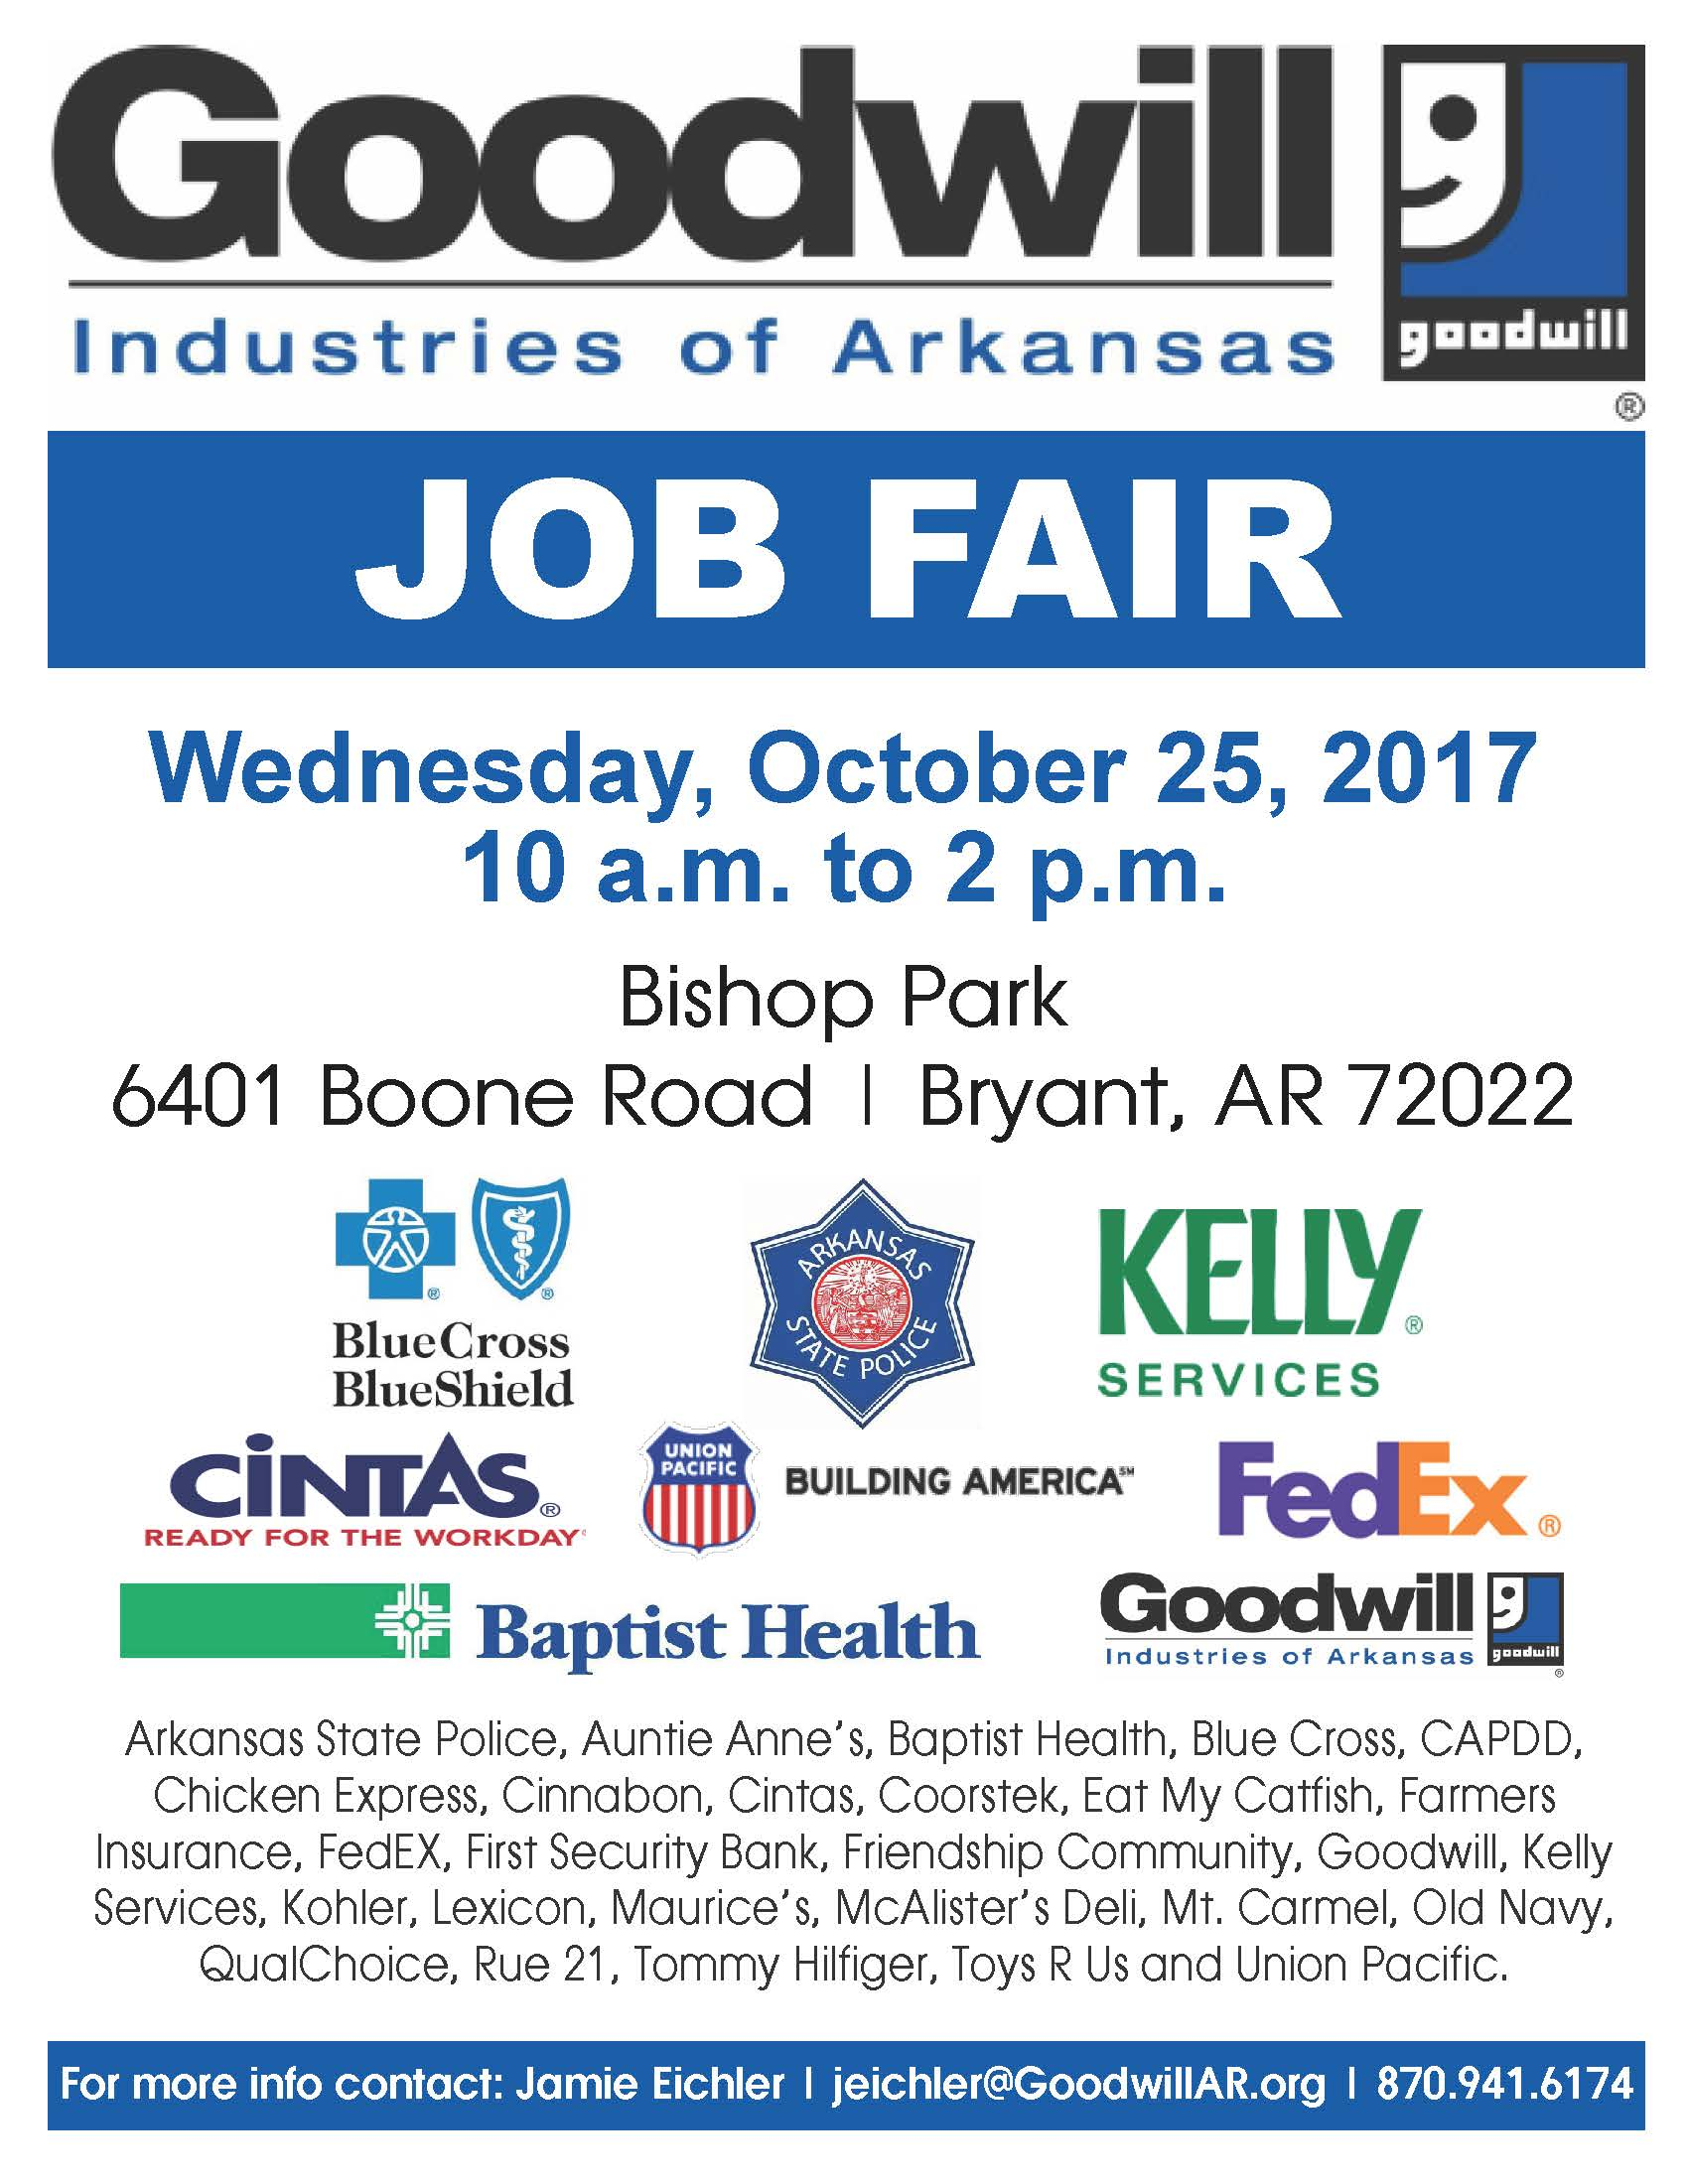 Goodwill Hiring Event in Bryant, AR